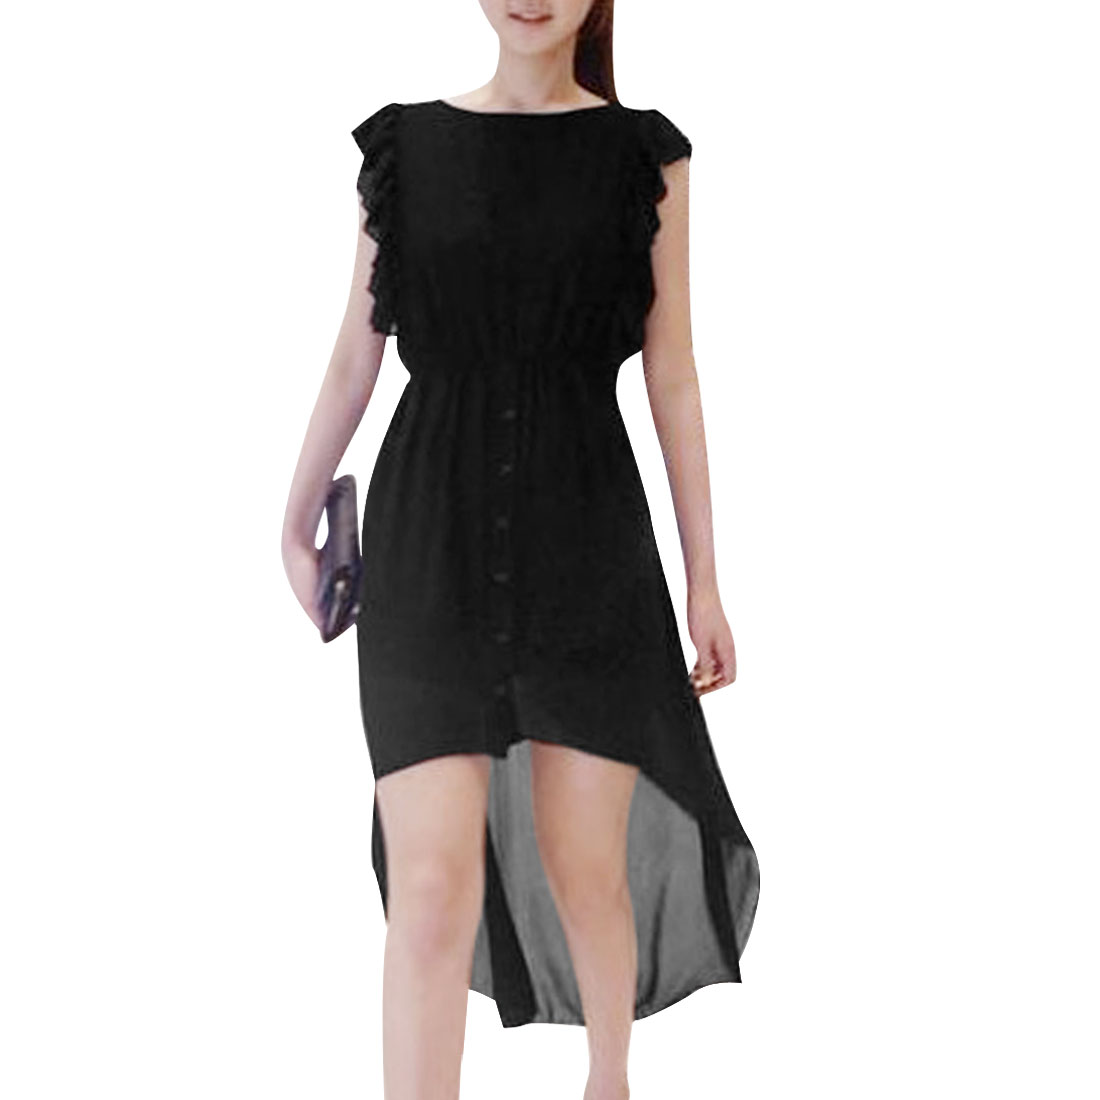 Women Black S Sleeveless High Low Hem Round Neck Stretchy Waist Dress